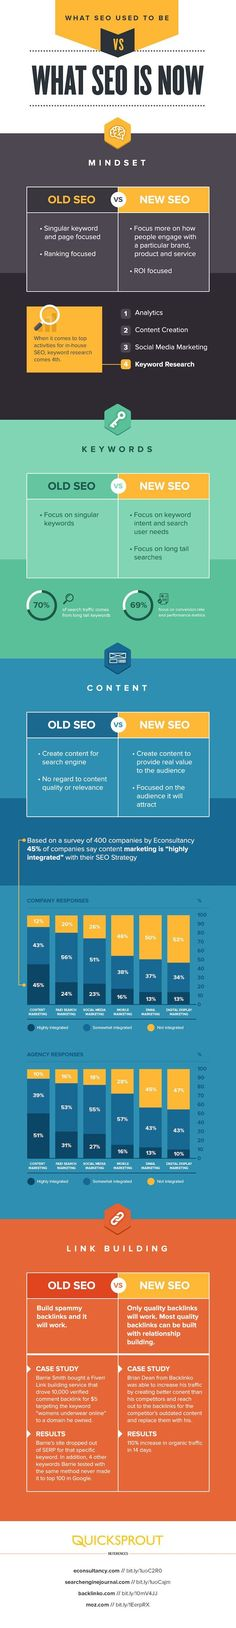 cool Visualistan: What SEO Used to Be Vs What SEO Is Now #infographic